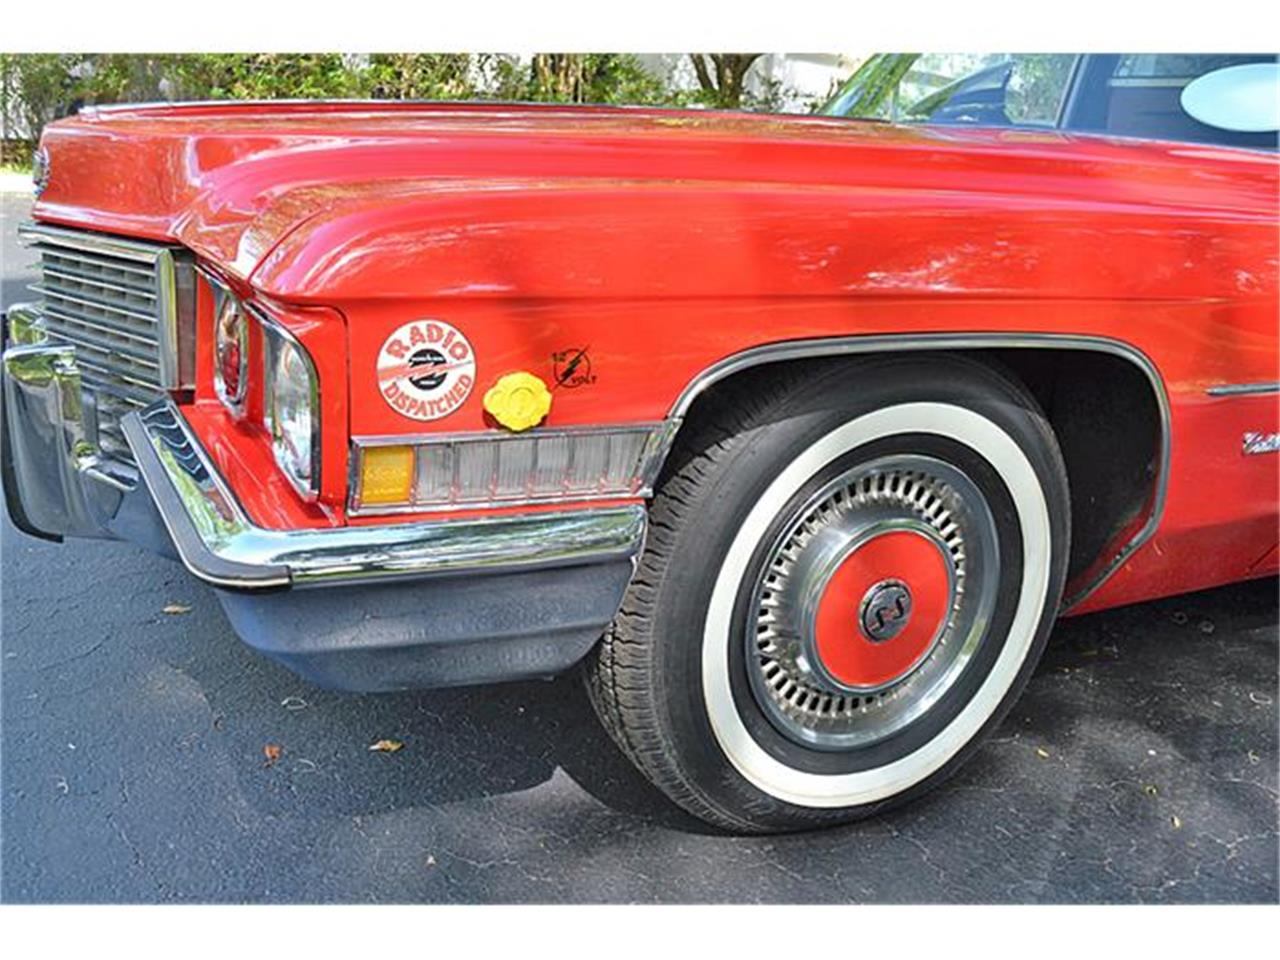 Large Picture of '72 Cadillac S&S Kesington Professional Ambulance located in Florida Offered by Classic Dreamcars, Inc. - IWNH